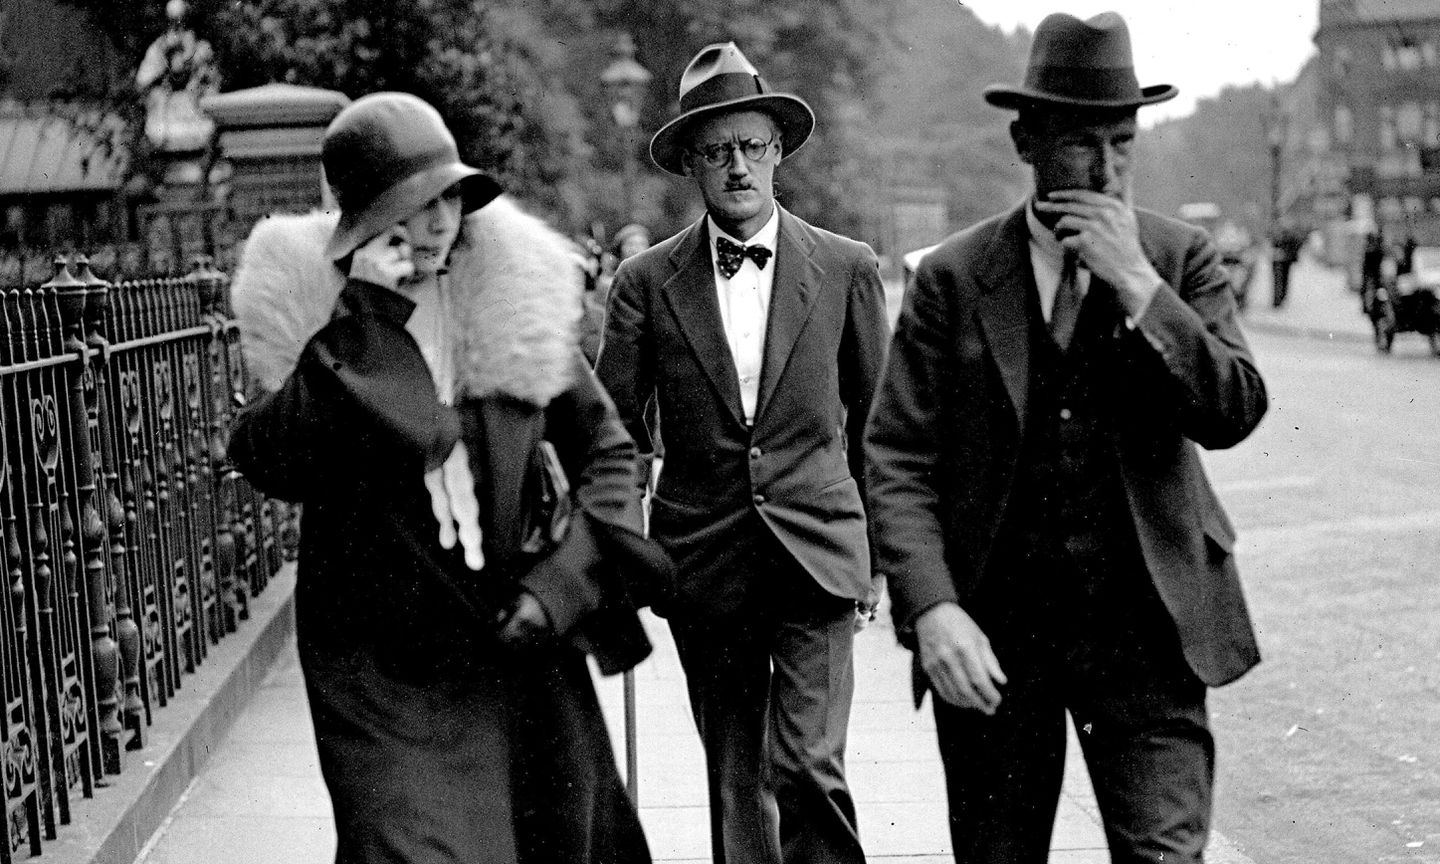 Nora Barnacle and James Joyce (center) in London on the day of their marriage, July 4th, 1931.